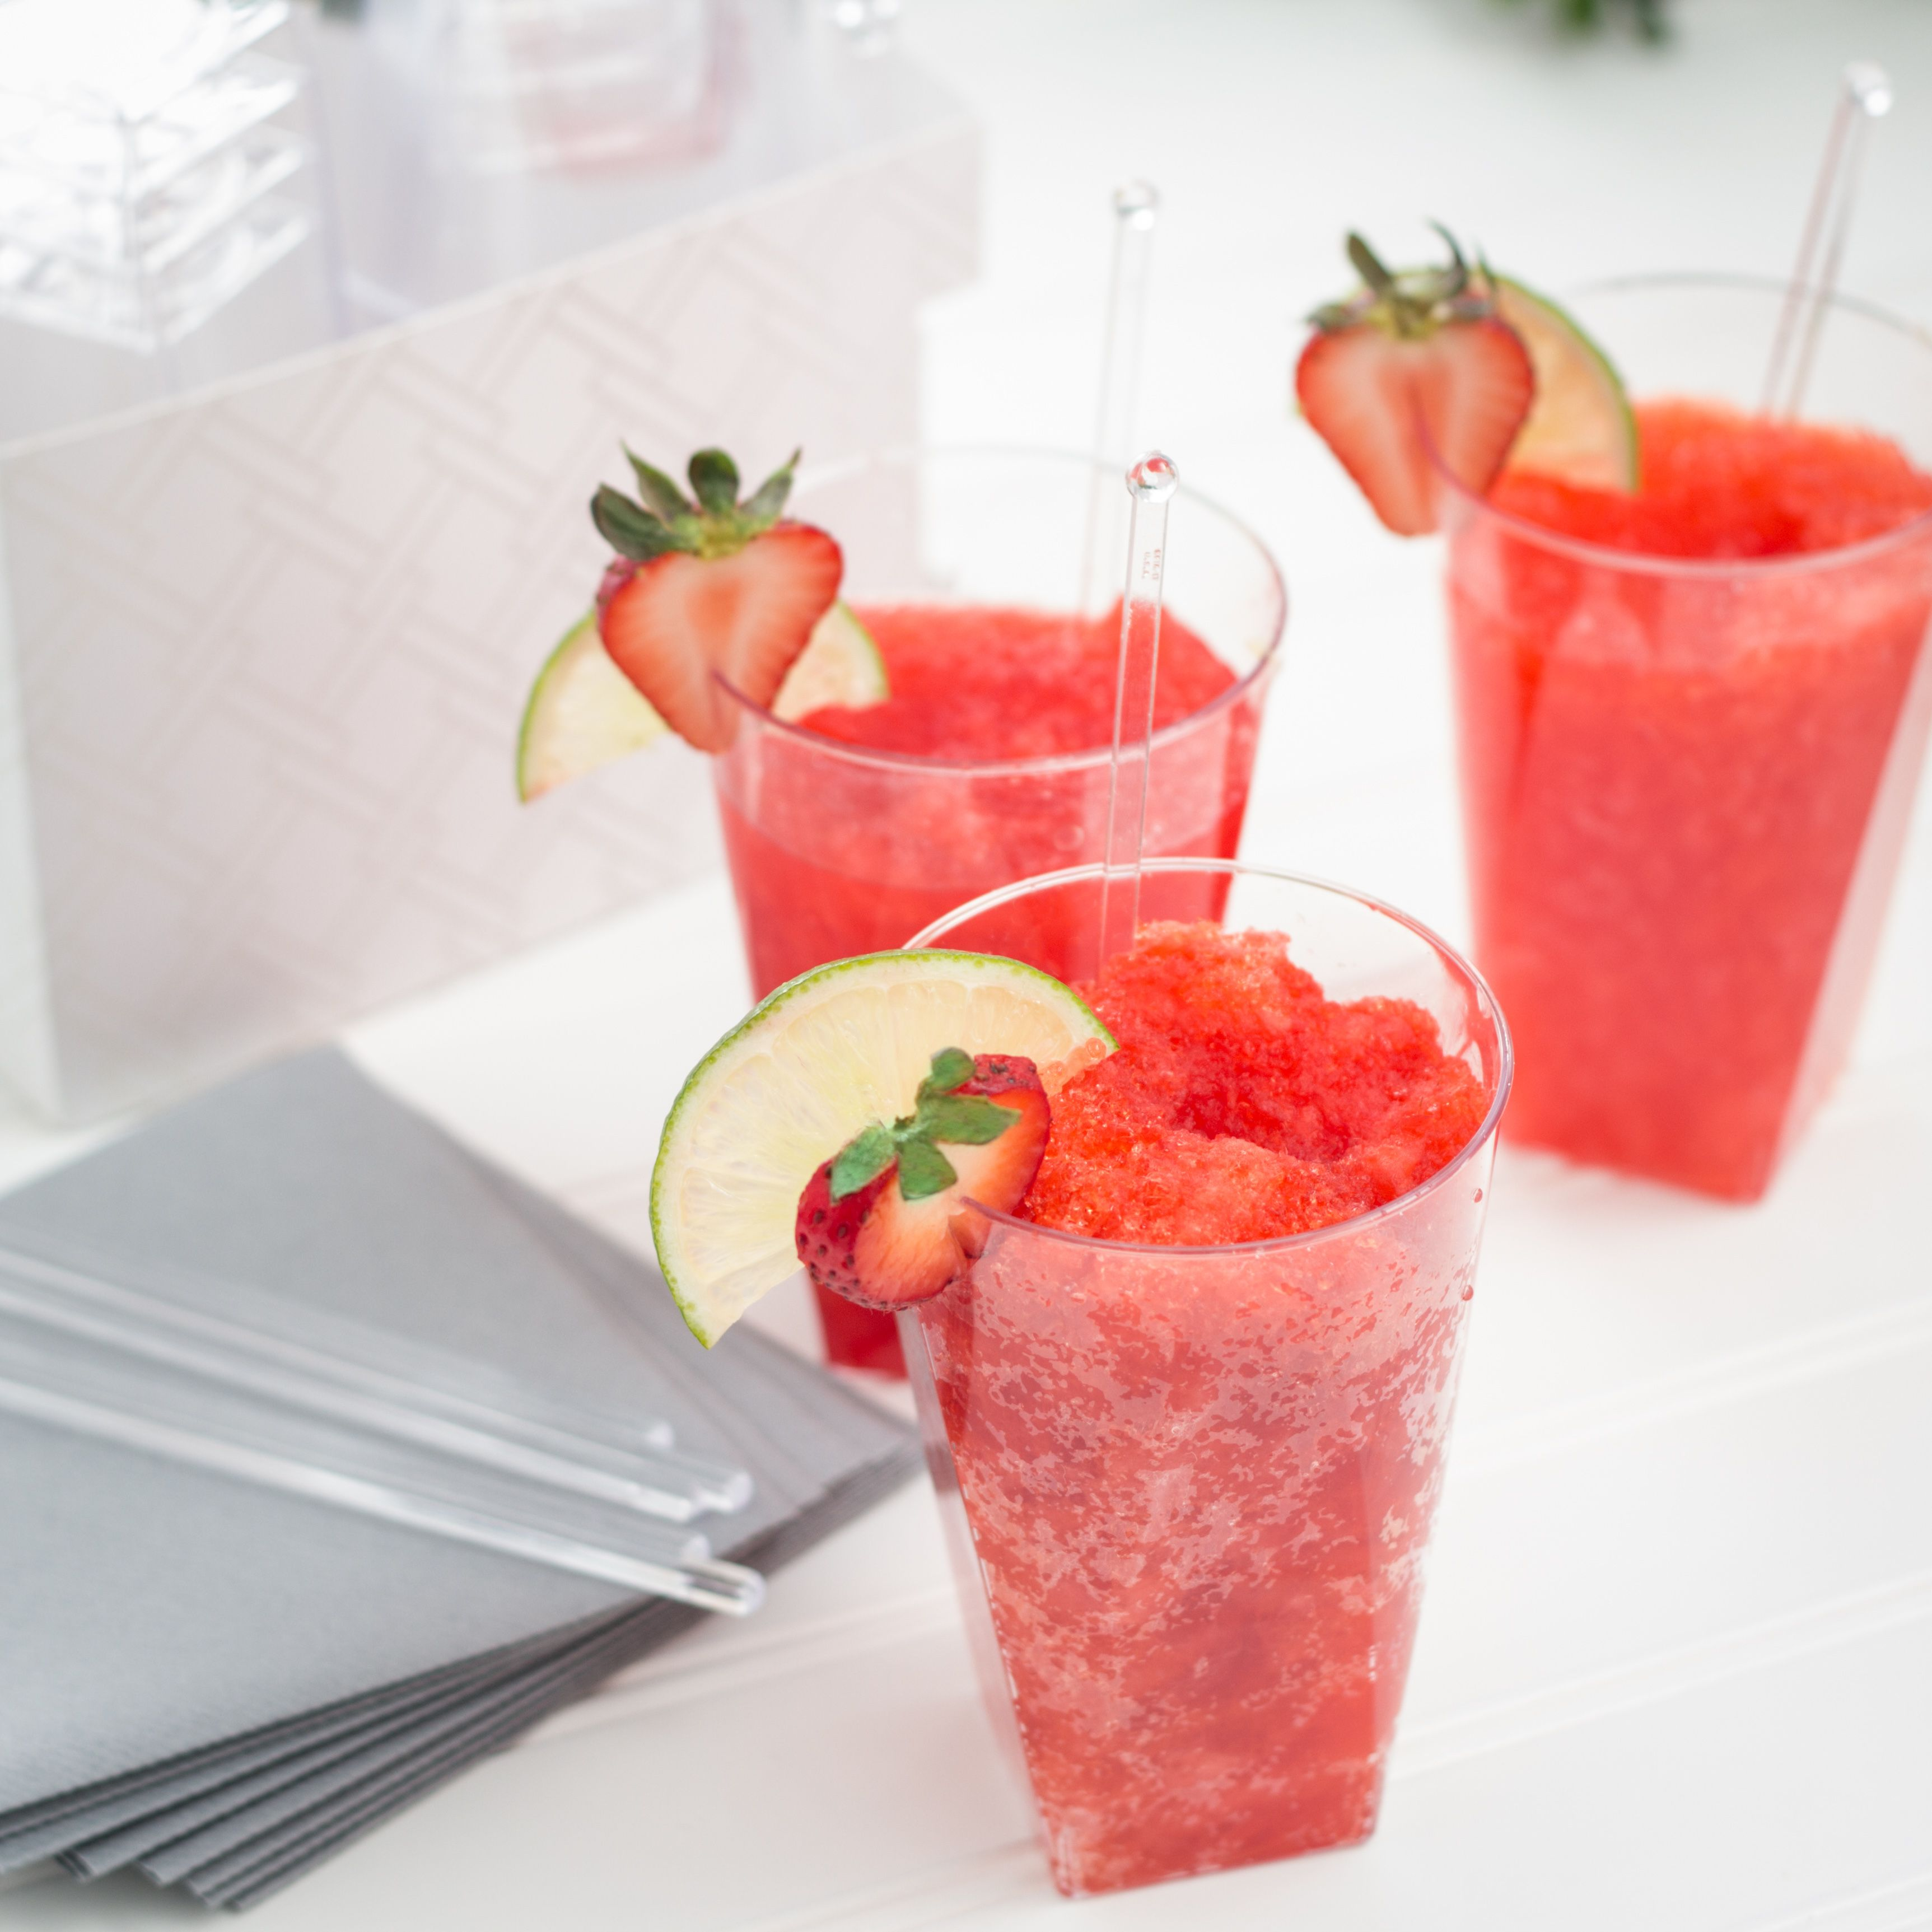 Blend up a pitcher of Frozen Strawberry Daiquiris for National Daiquiri Day. Optional but recommended: Beach, pool or body of water for the ultimate daiquiri experience. Shop our  Luxe Cups at Target today!